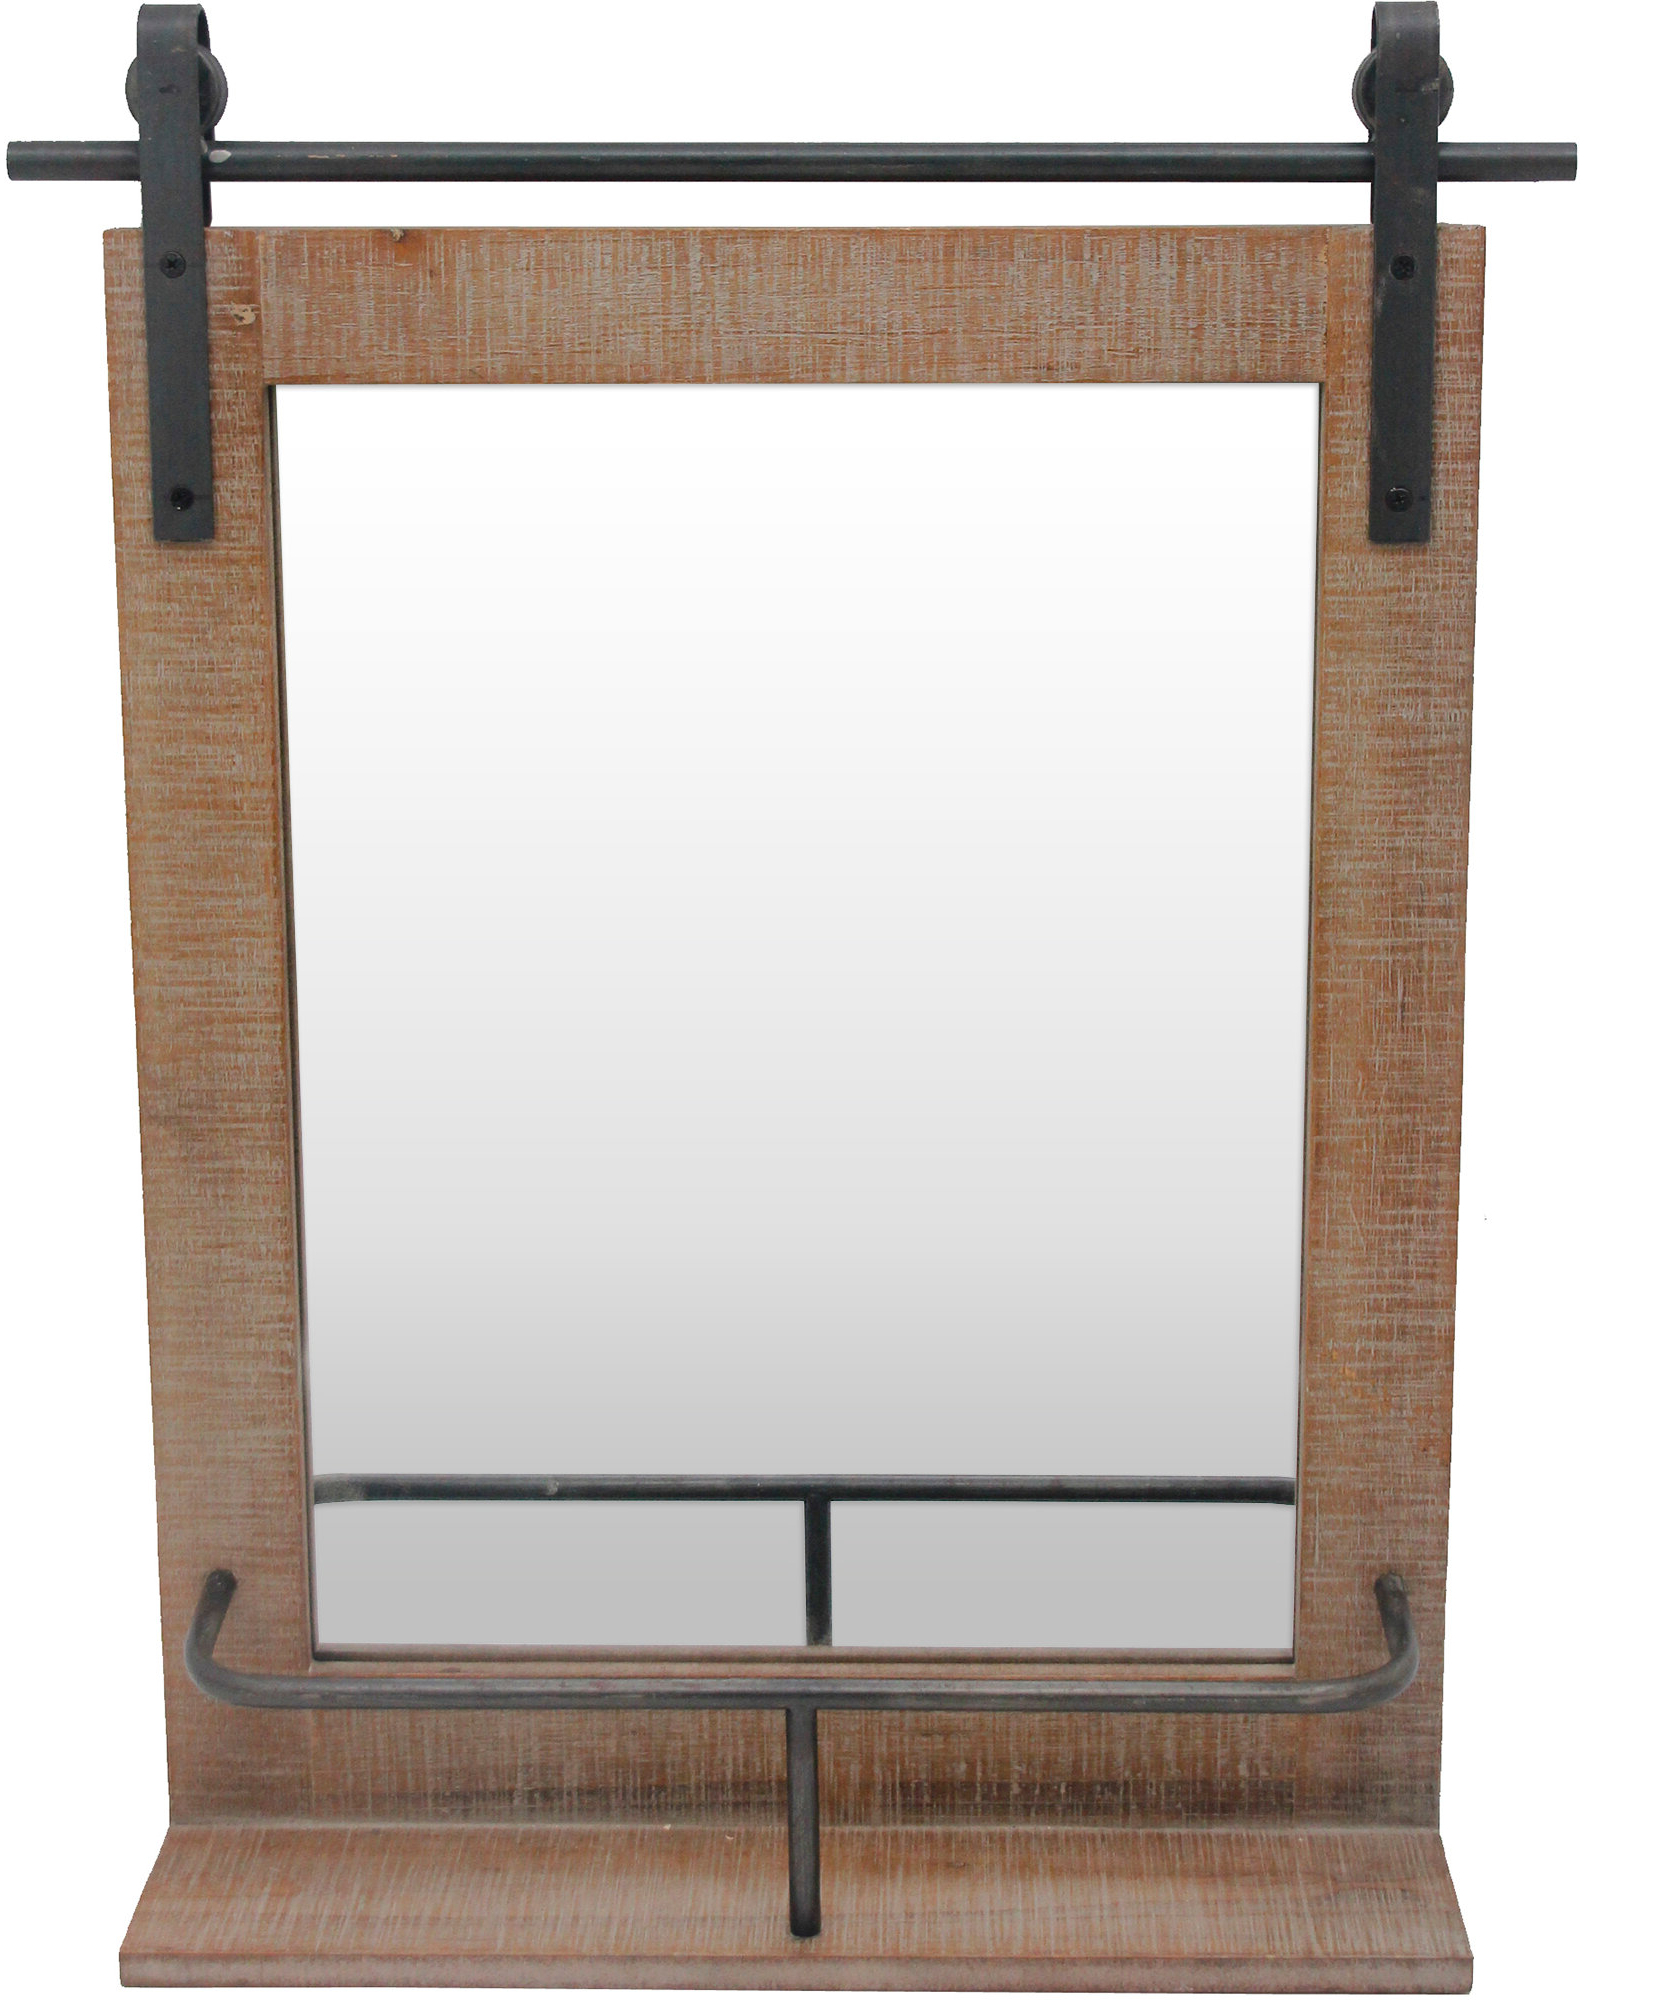 Koeller Industrial Metal Wall Mirrors With 2019 Nielsen Barn Door Rustic Accent Mirror With Shelves (Gallery 20 of 20)